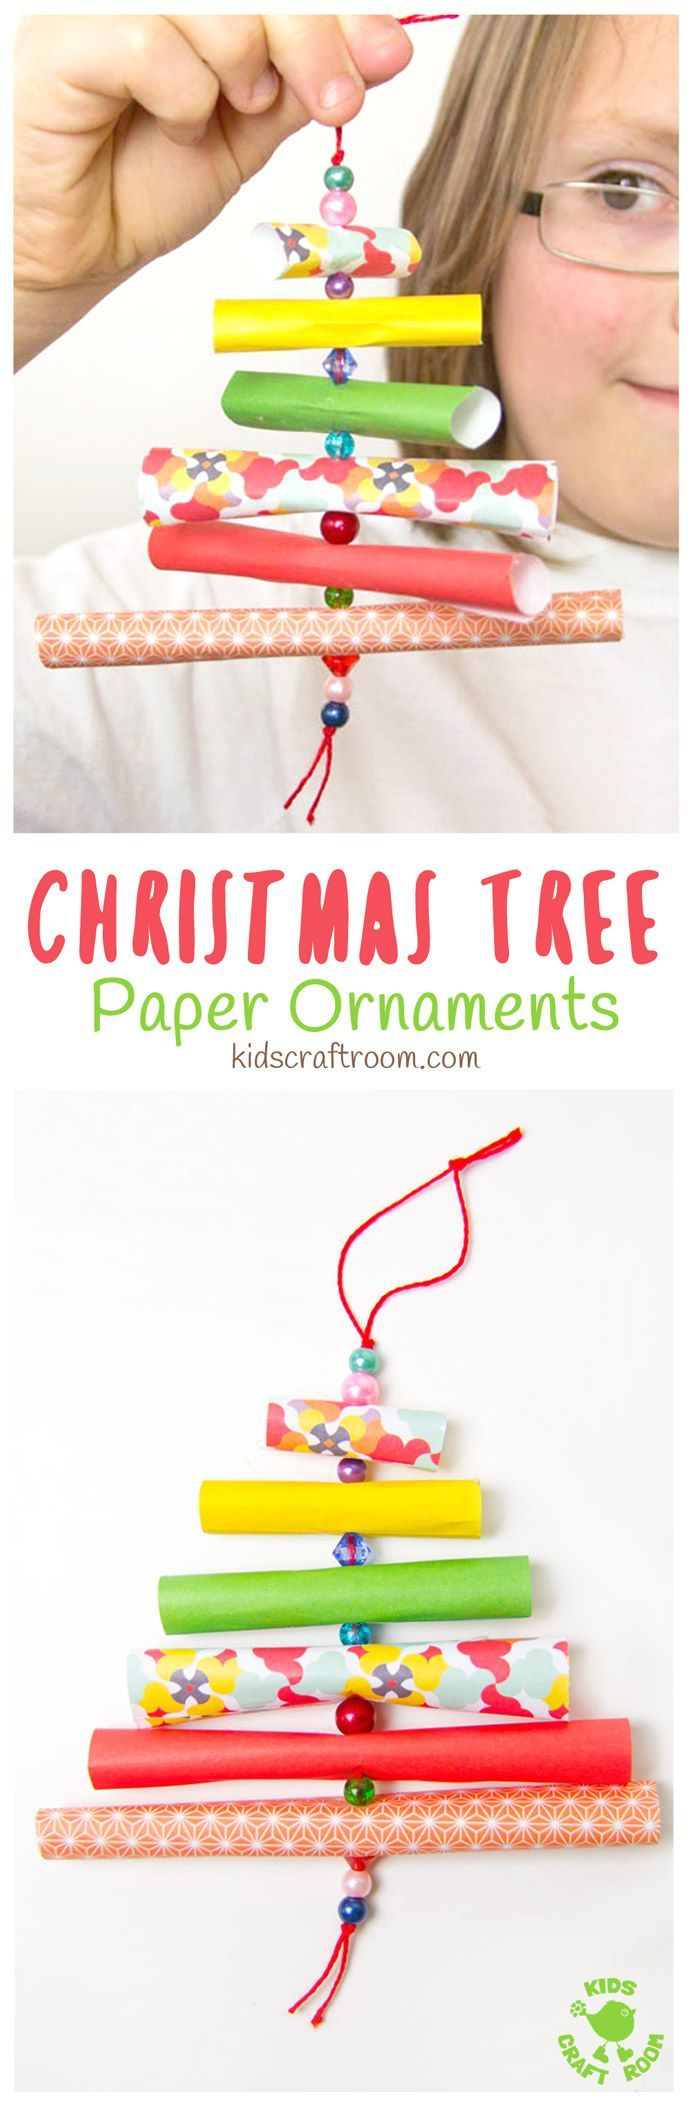 CHRISTMAS TREE PAPER ORNAMENTS - Have fun with paper and beads making adorable homemade Christmas ornaments in the shape of Christmas trees. Pretty enough for grown-ups, simple enough for kids! #christmas #christmascrafts #christmasideas #christmascraftsforkids #christmastree #papercrafts #paper #kidscrafts via @KidsCraftRoom